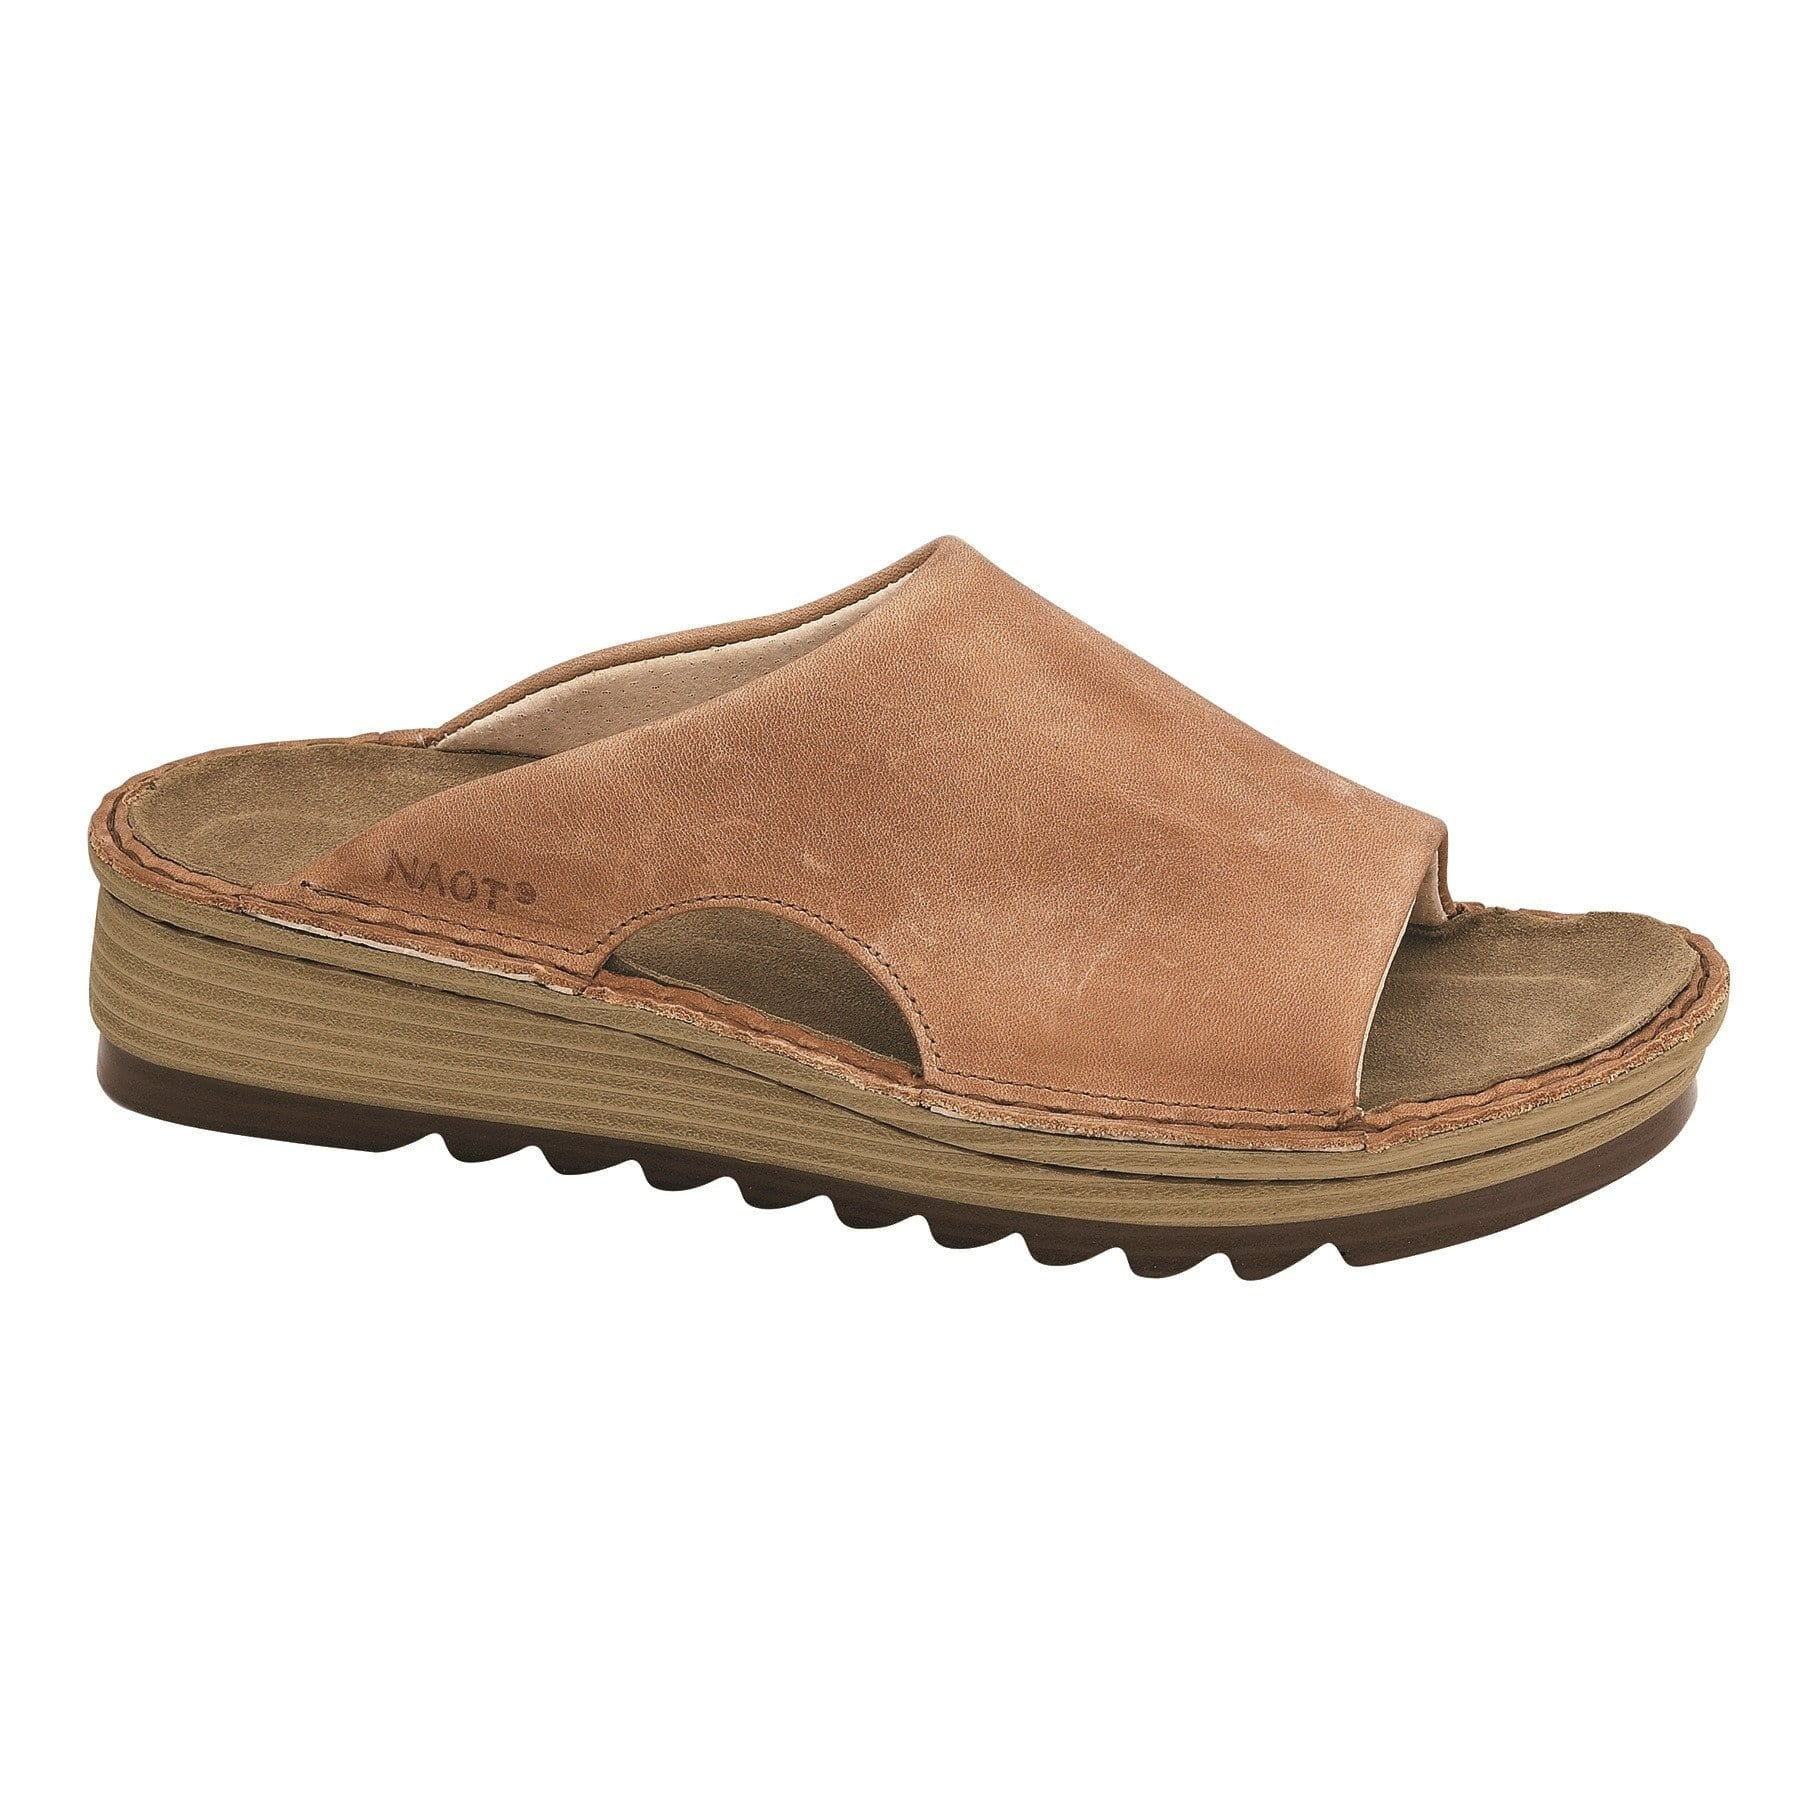 Naot Ardisia Women's Suede Durable Slip-on Sandal Shoe